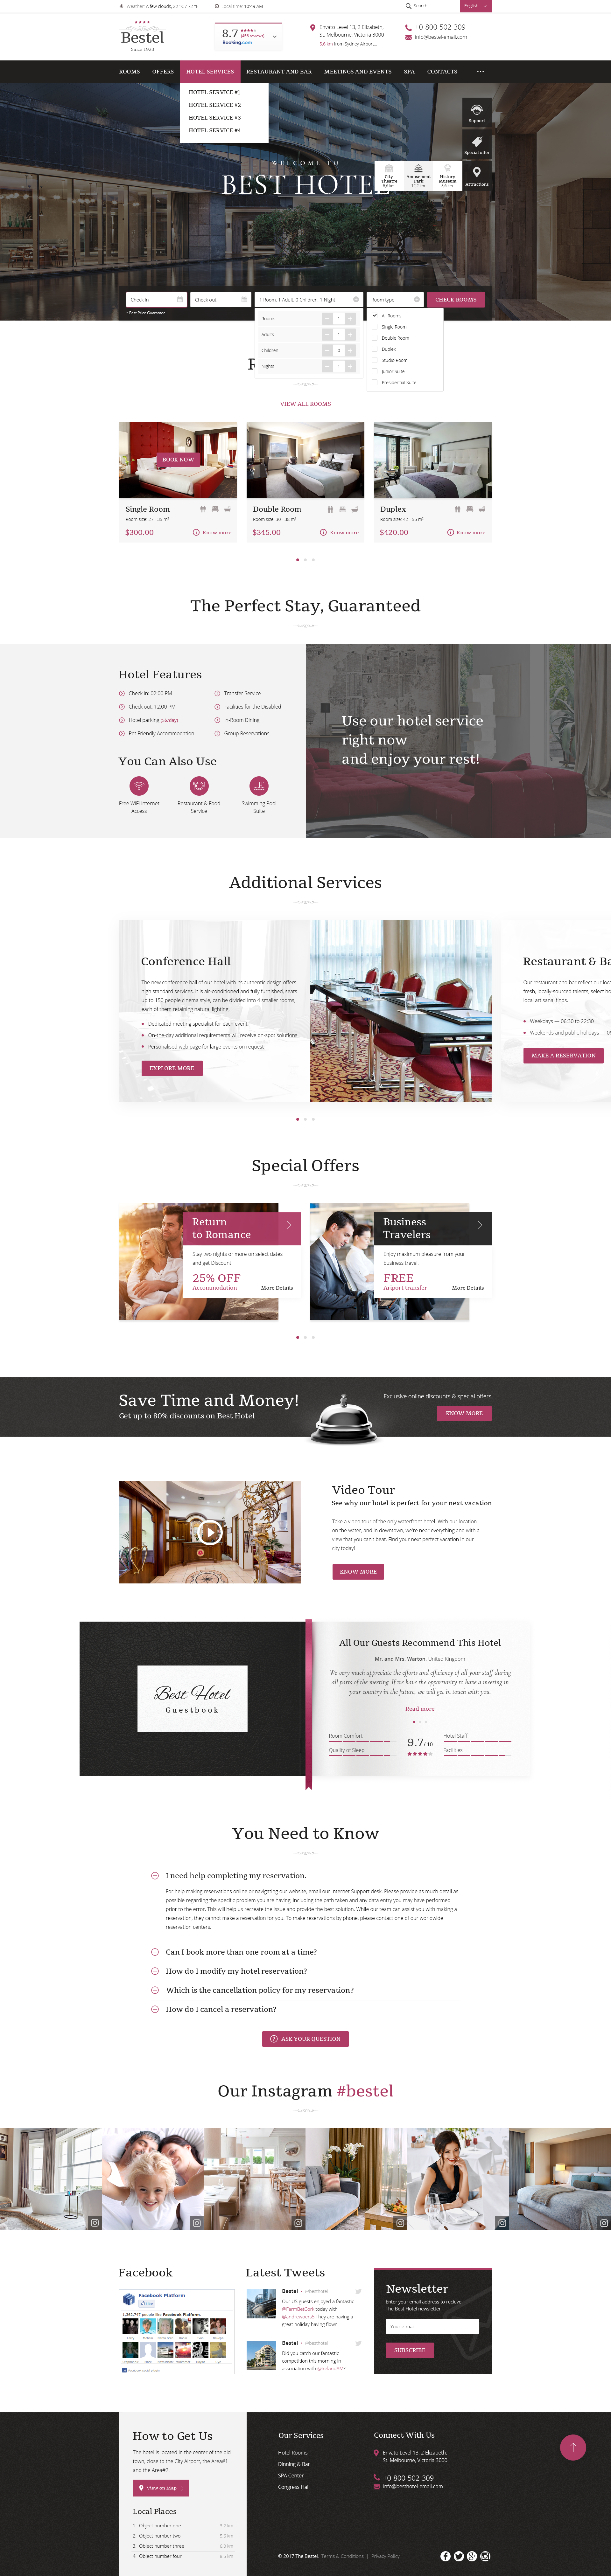 bestel-hote-booking-wordpress-theme